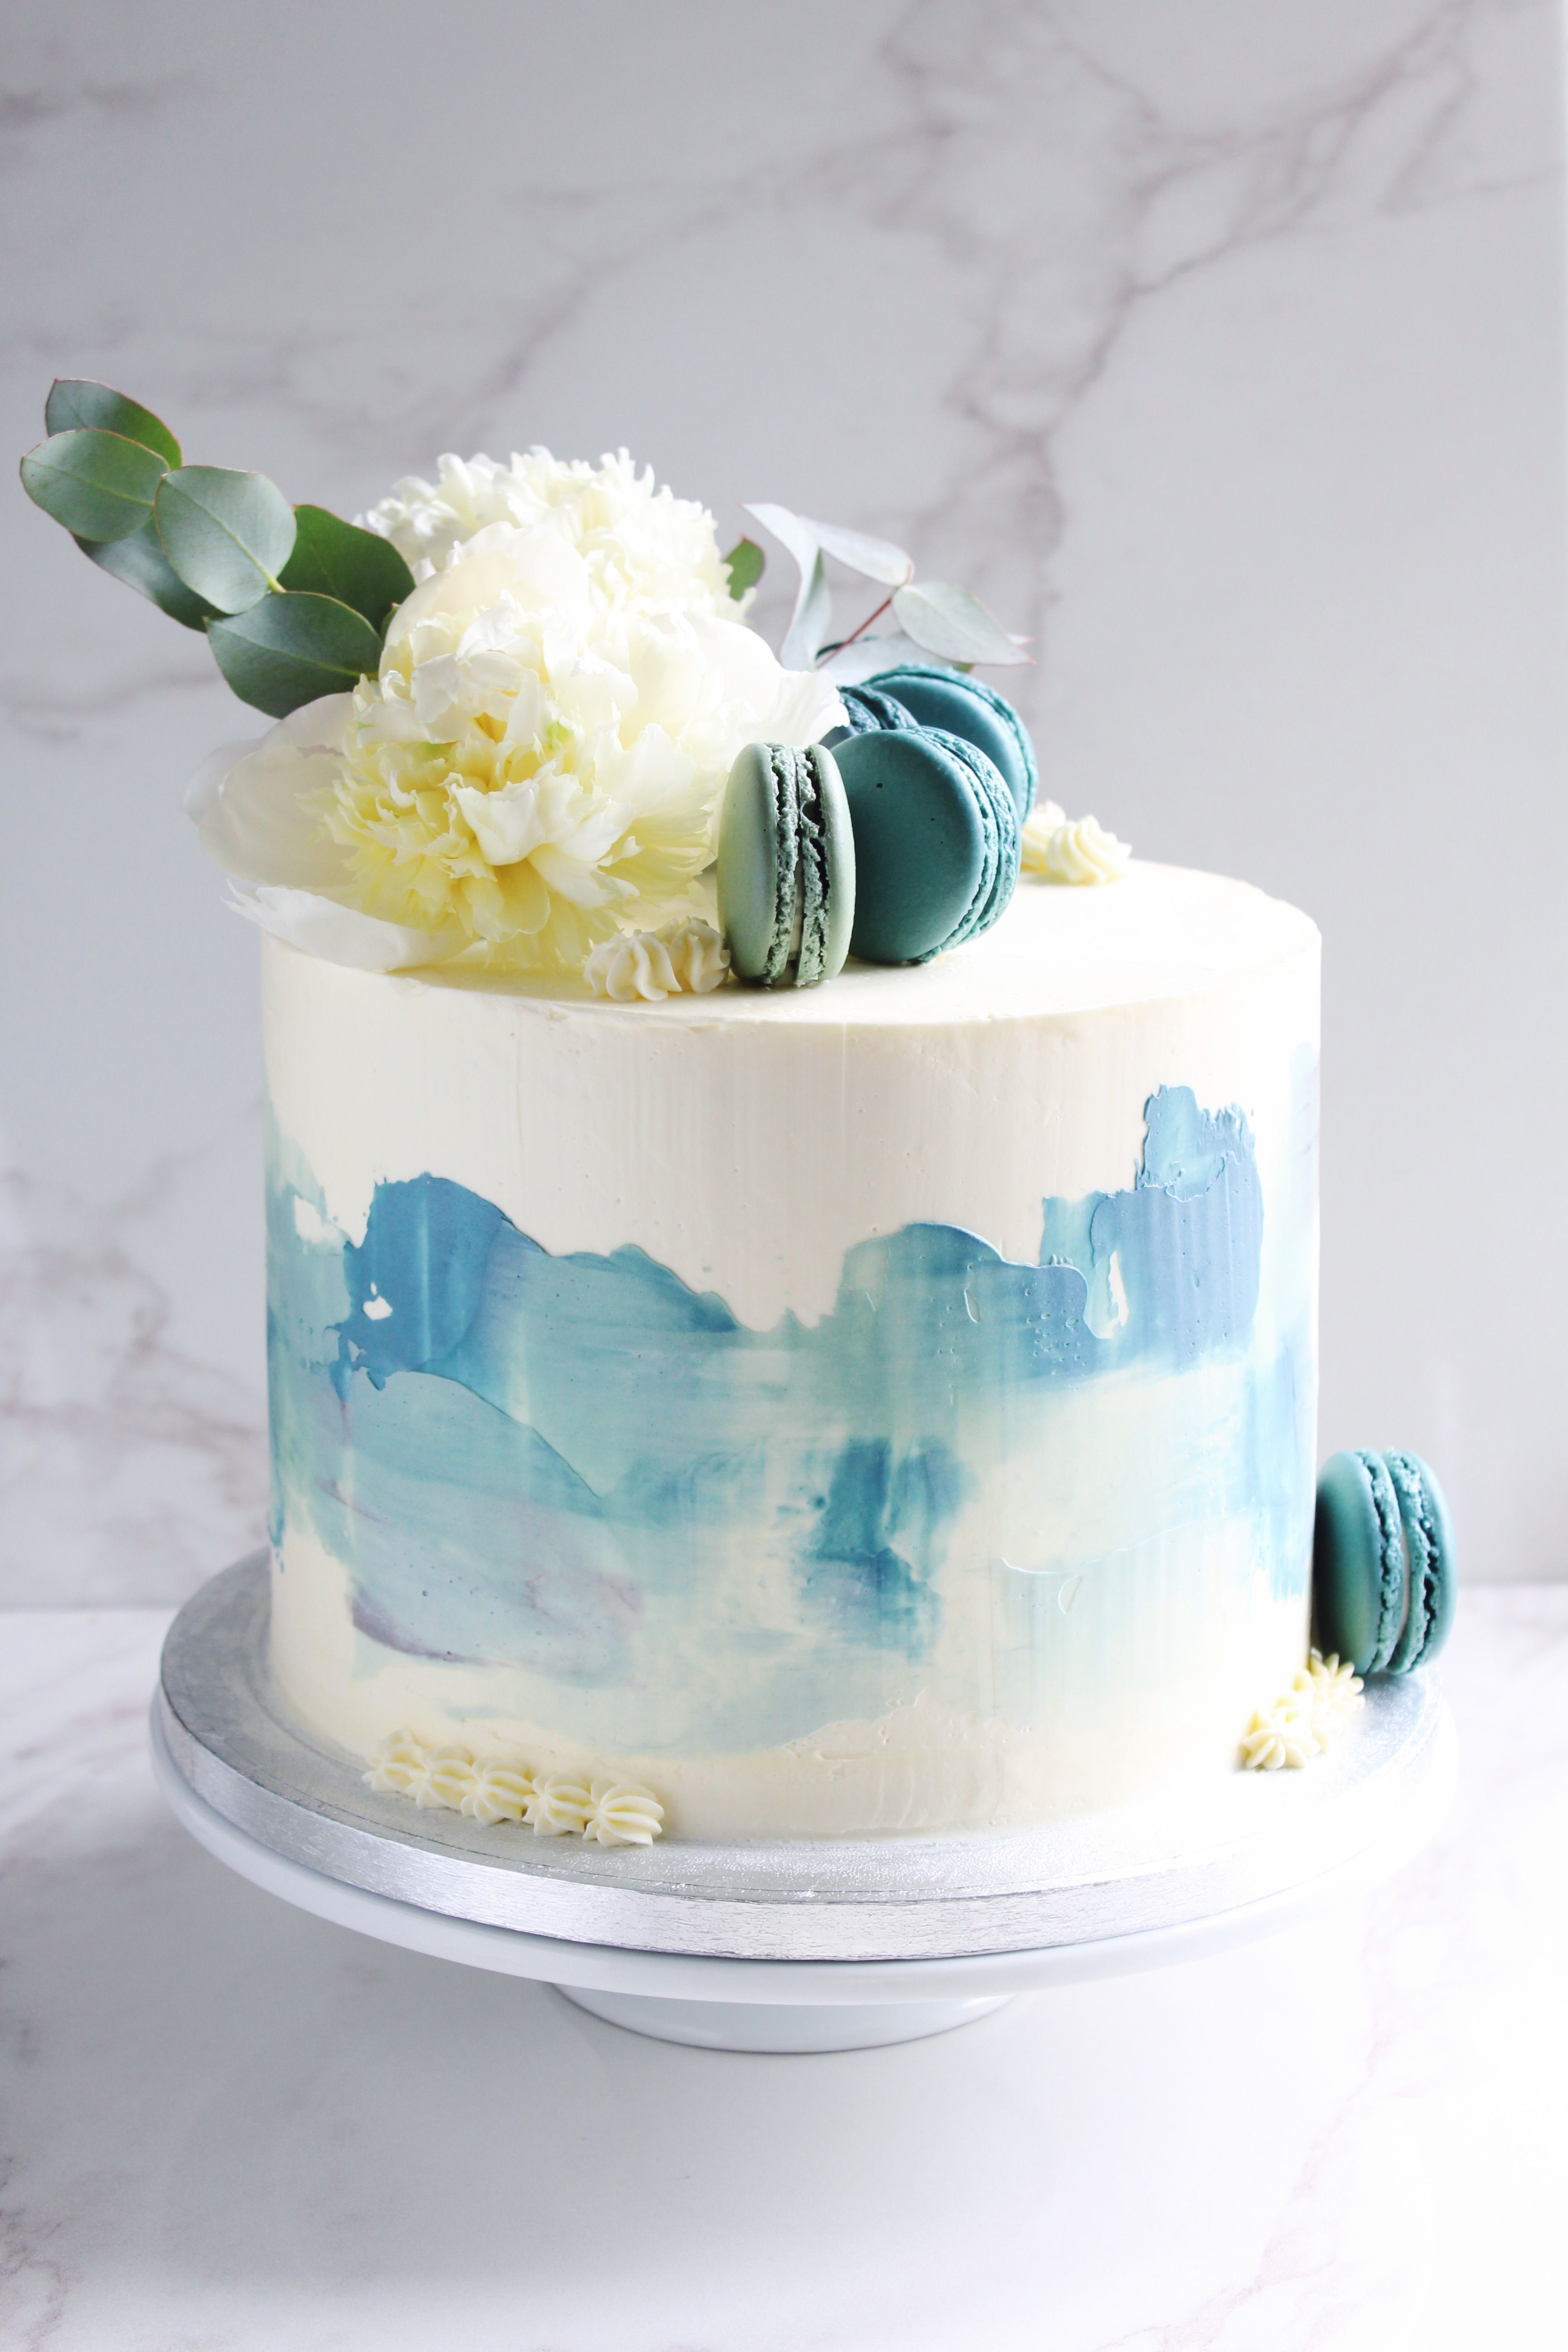 Our Lemon And Coconut Baby Shower Cake With Rustic Blue